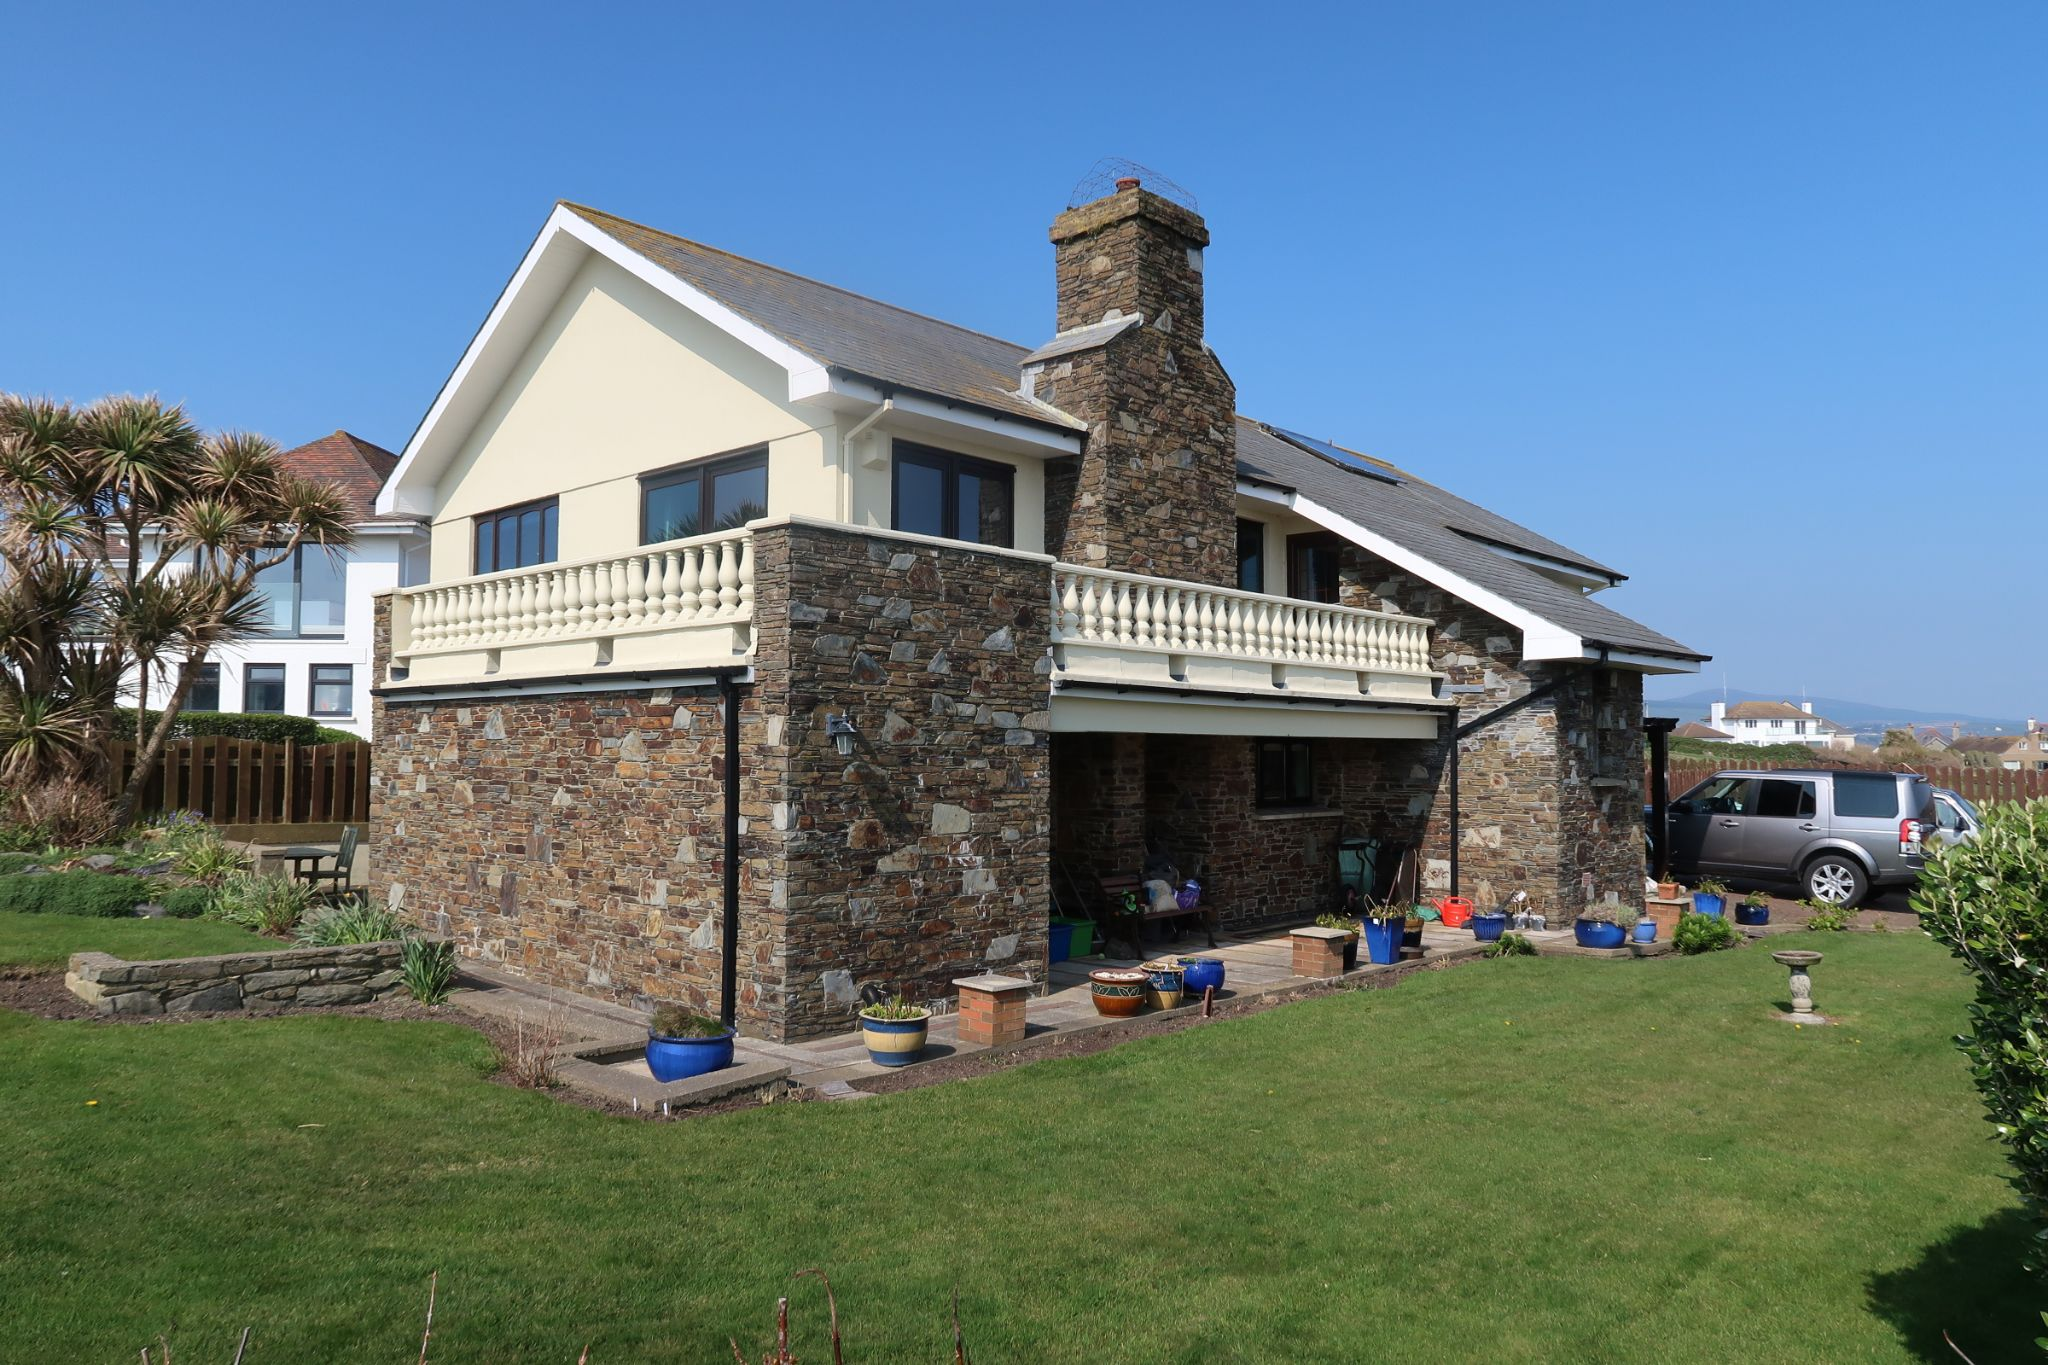 6 bedroom detached house Sold in Port St. Mary - Photograph 1